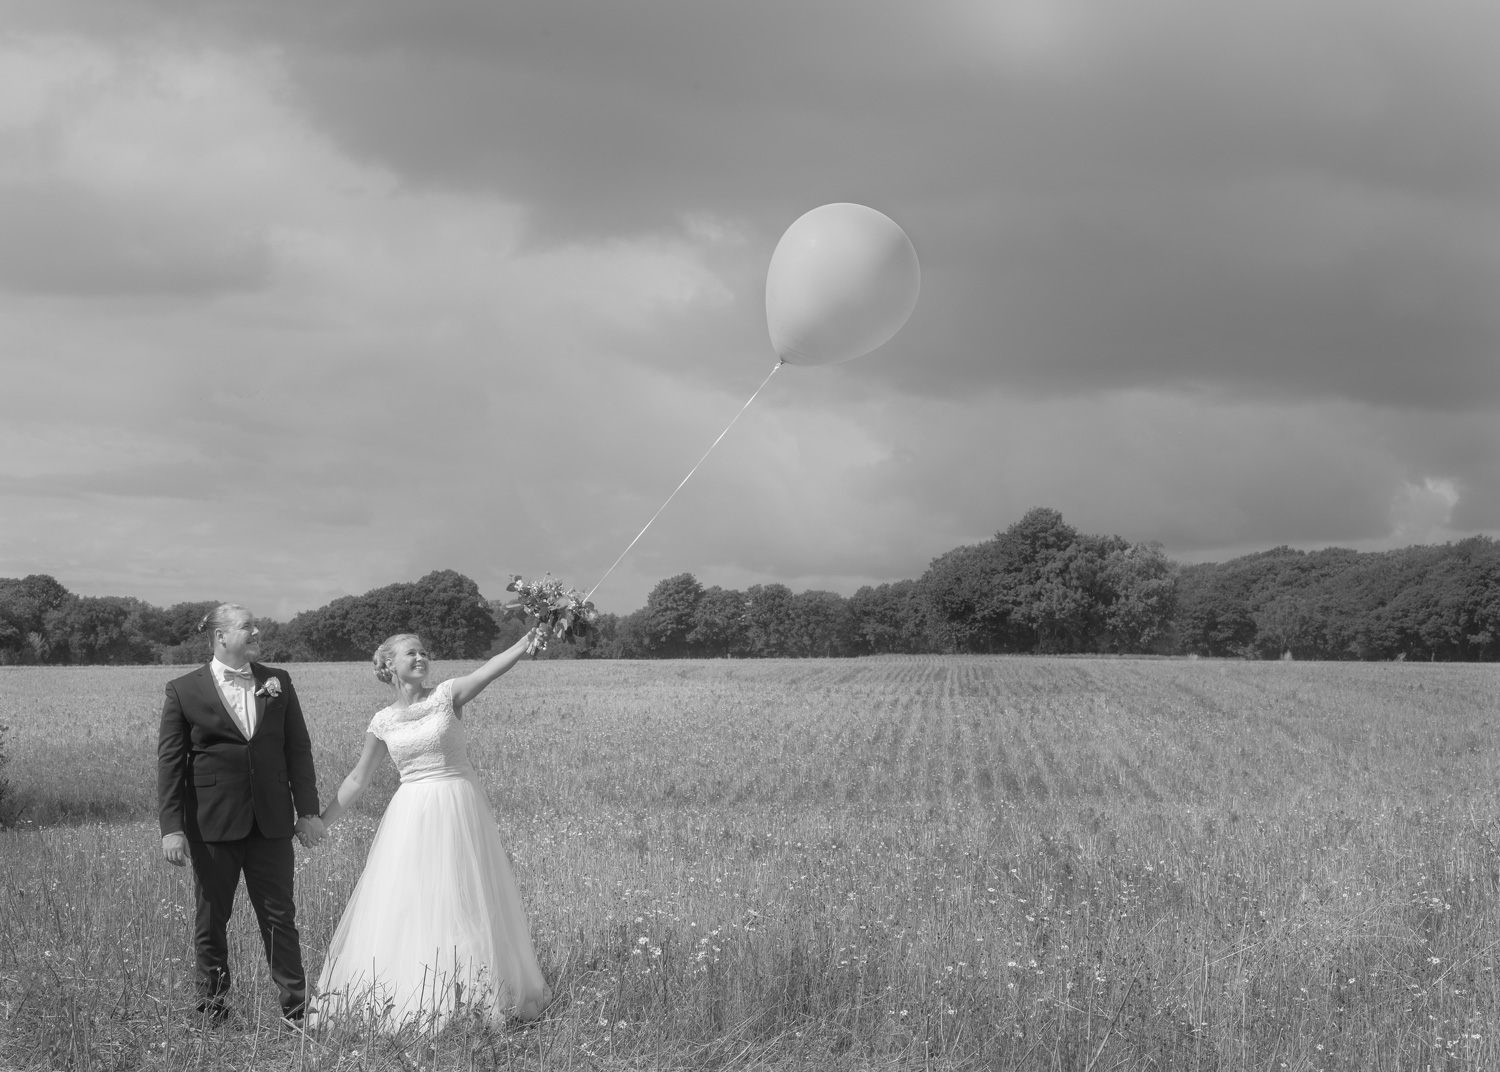 bride & groom on field with balloon